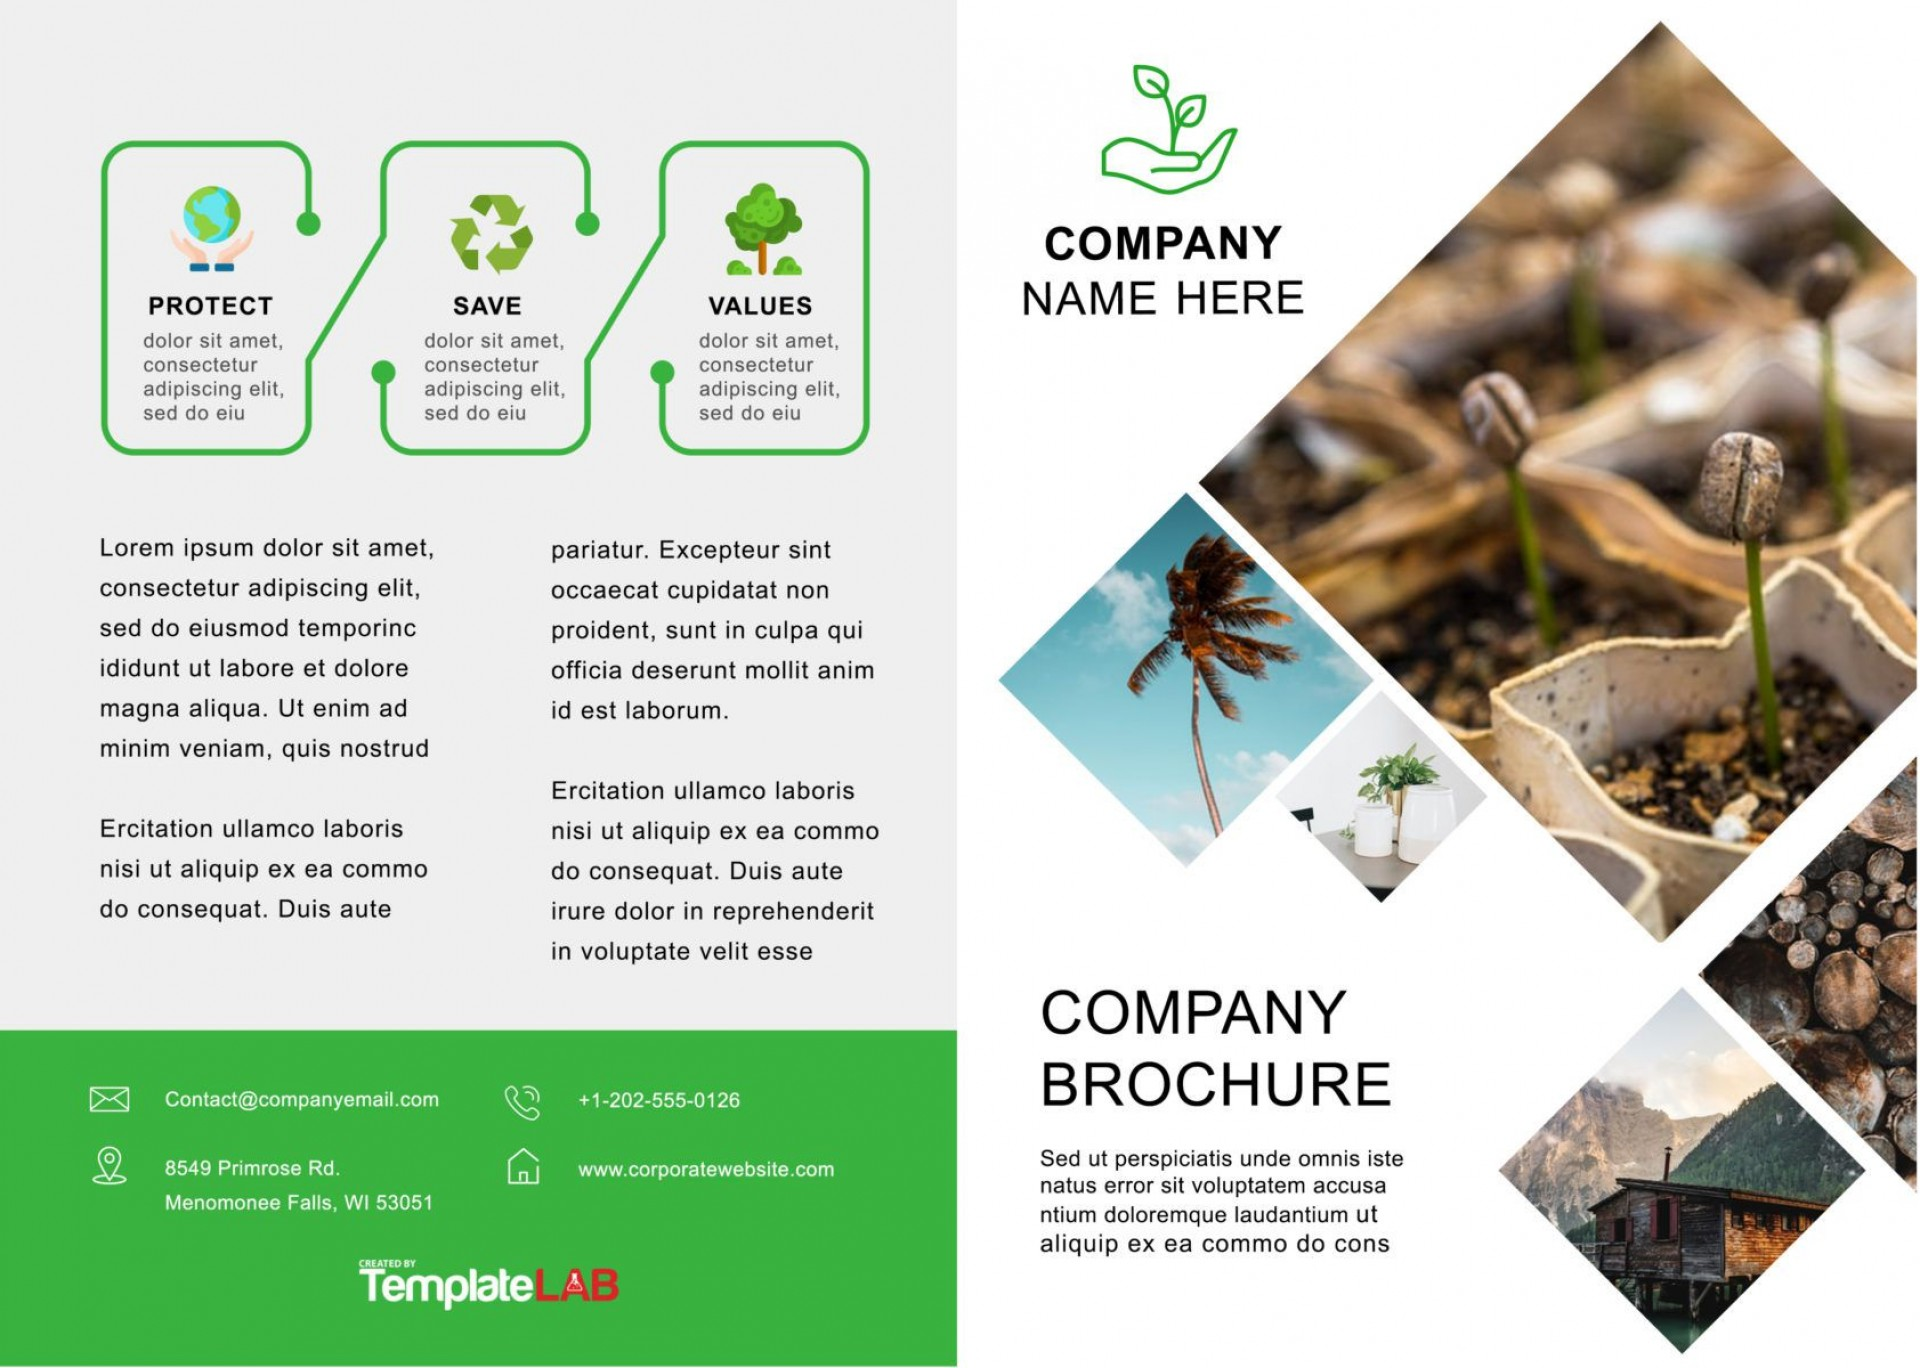 003 Remarkable Word Brochure Template Download Free Idea  3 Fold Travel Tri1920